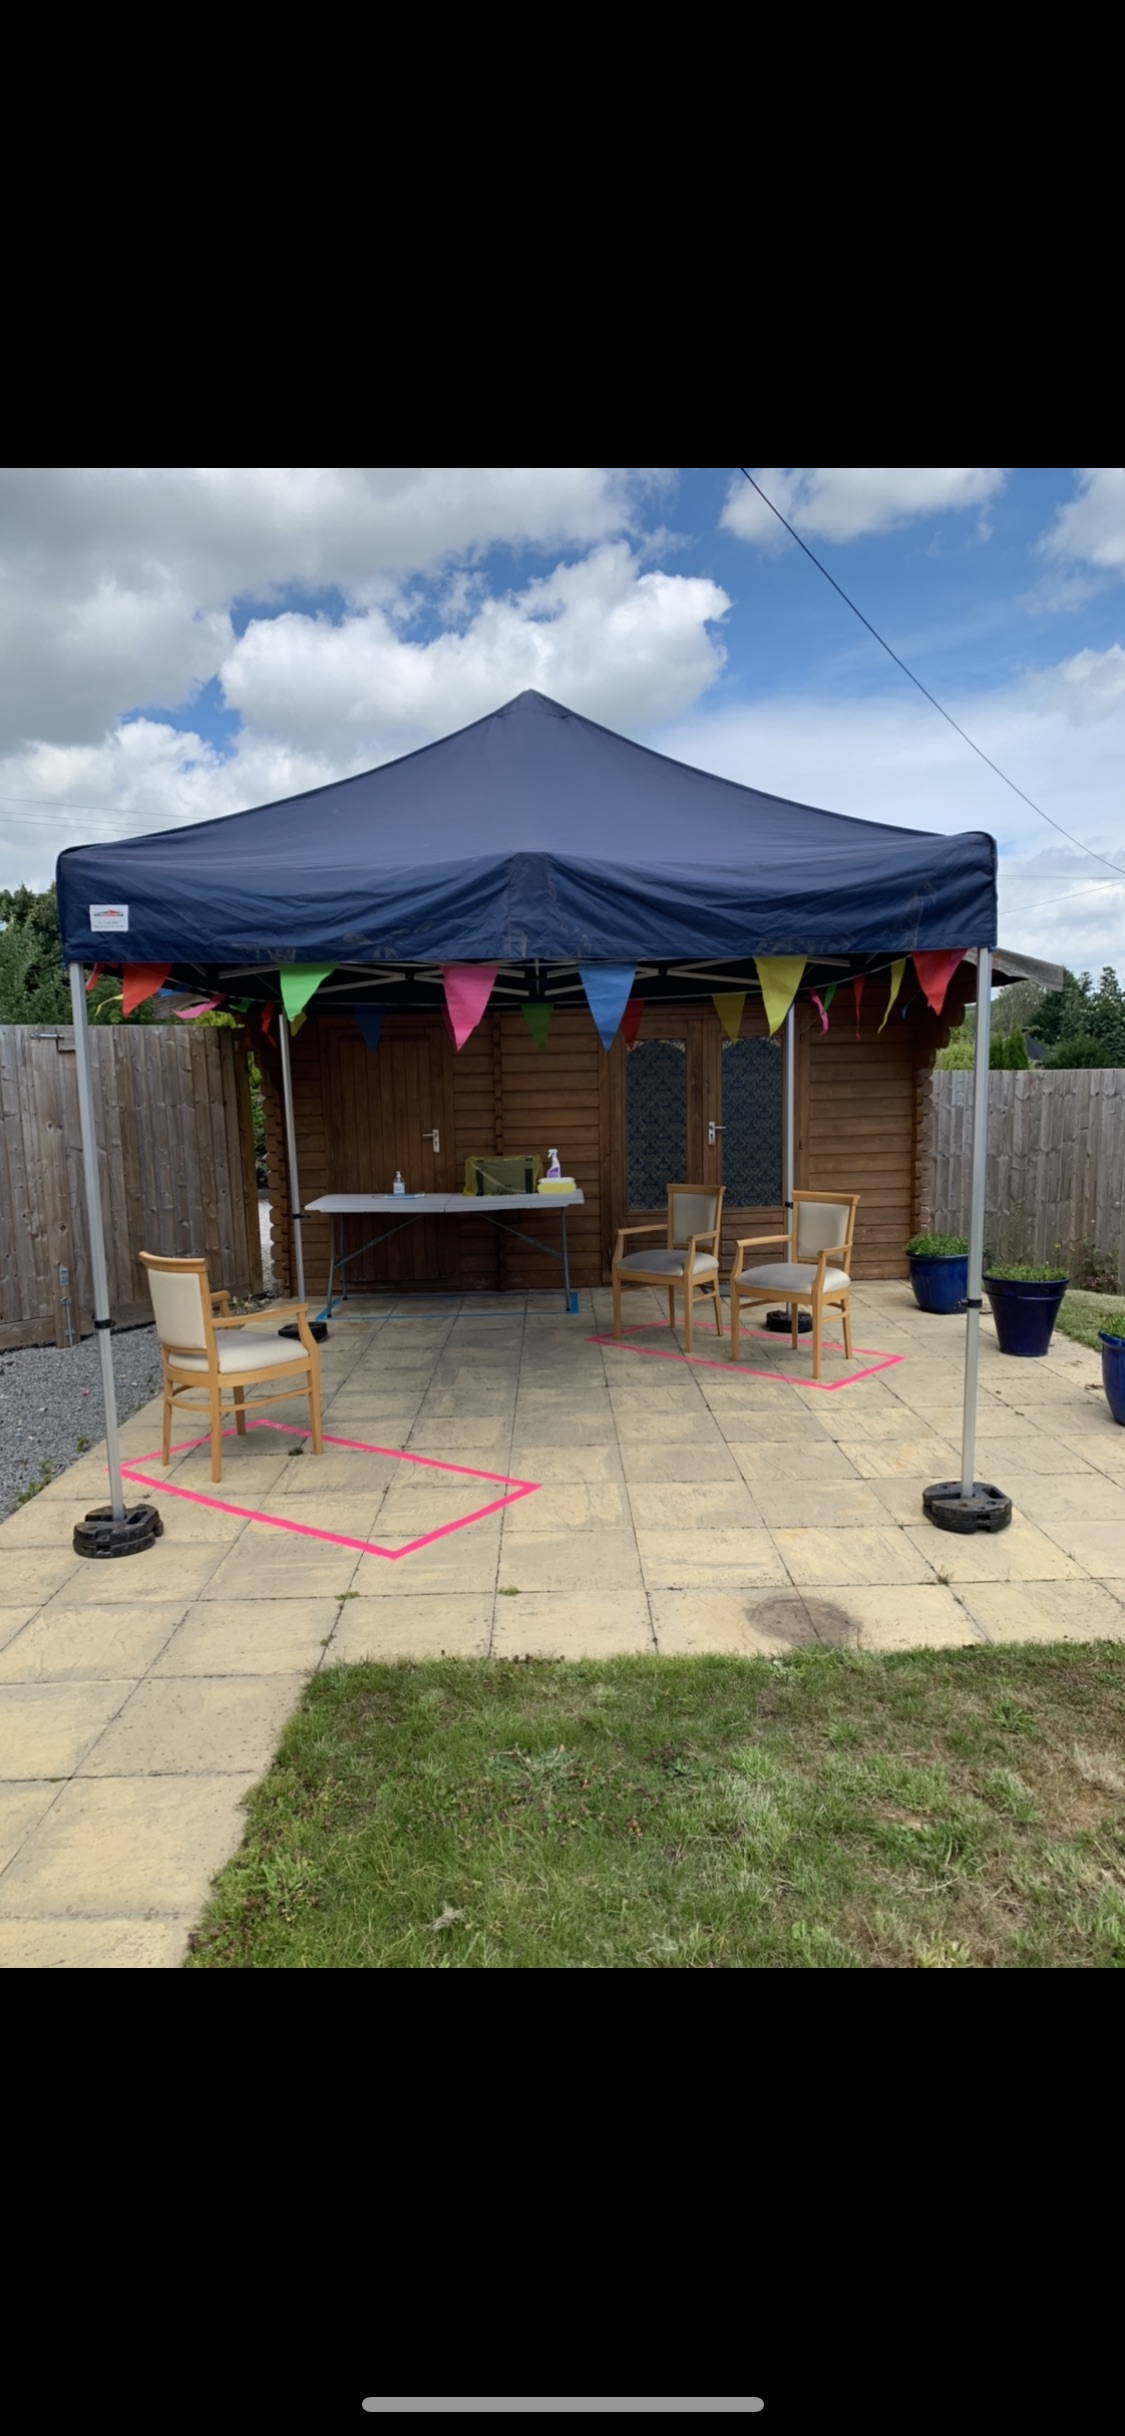 Outdoor visiting area at Crick Care Home in Caldicot